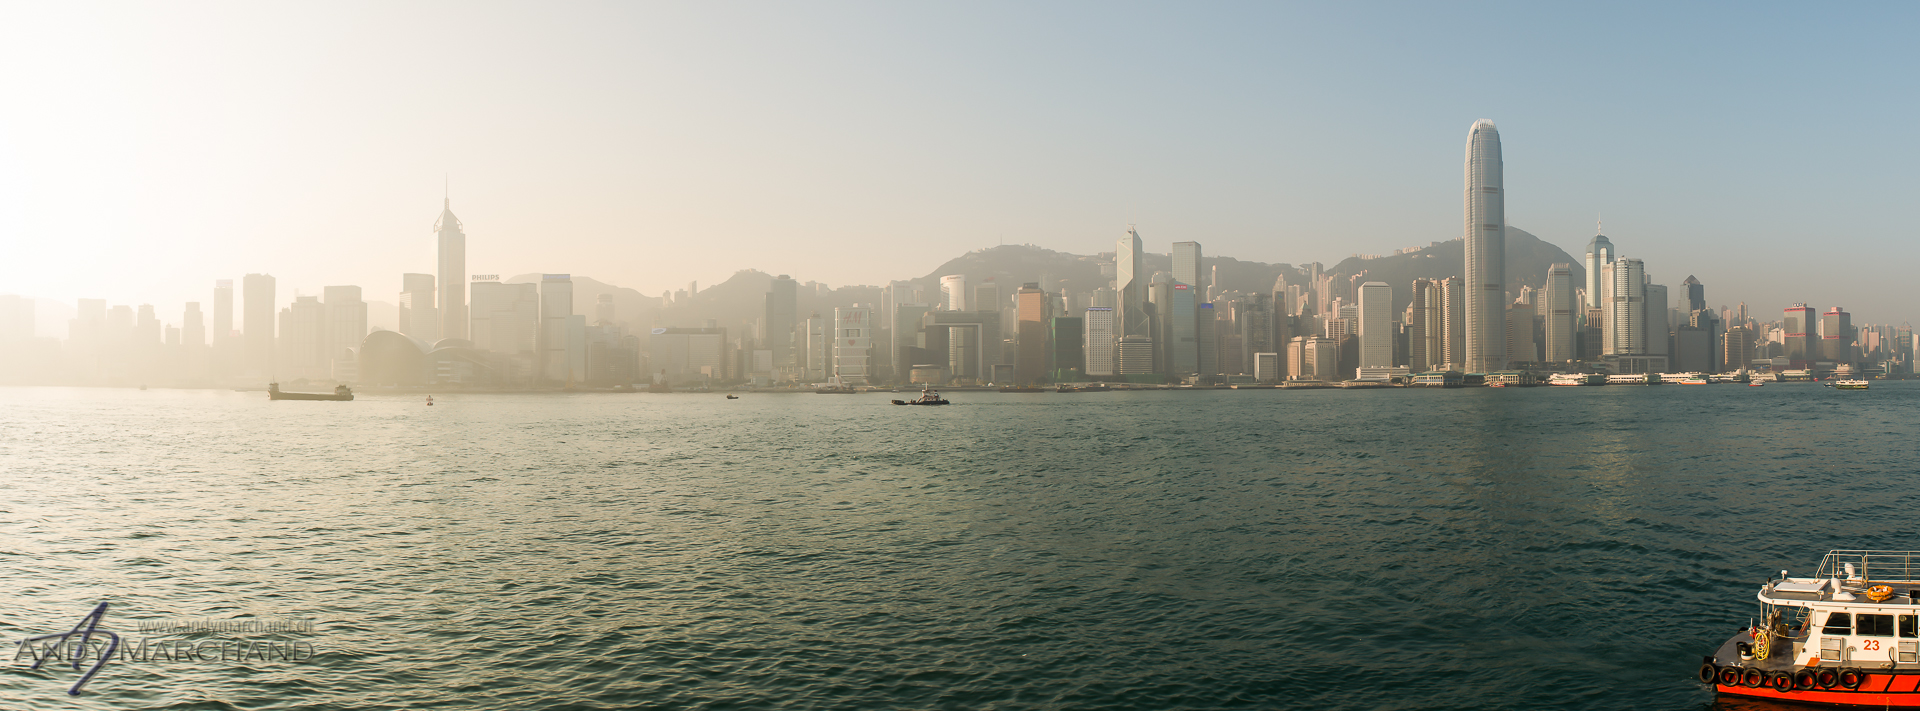 Hong Kong Skyline from Avenue Of Stars  (morning) 24mm, 1/250s, f /8.0, ISO 100, stitched